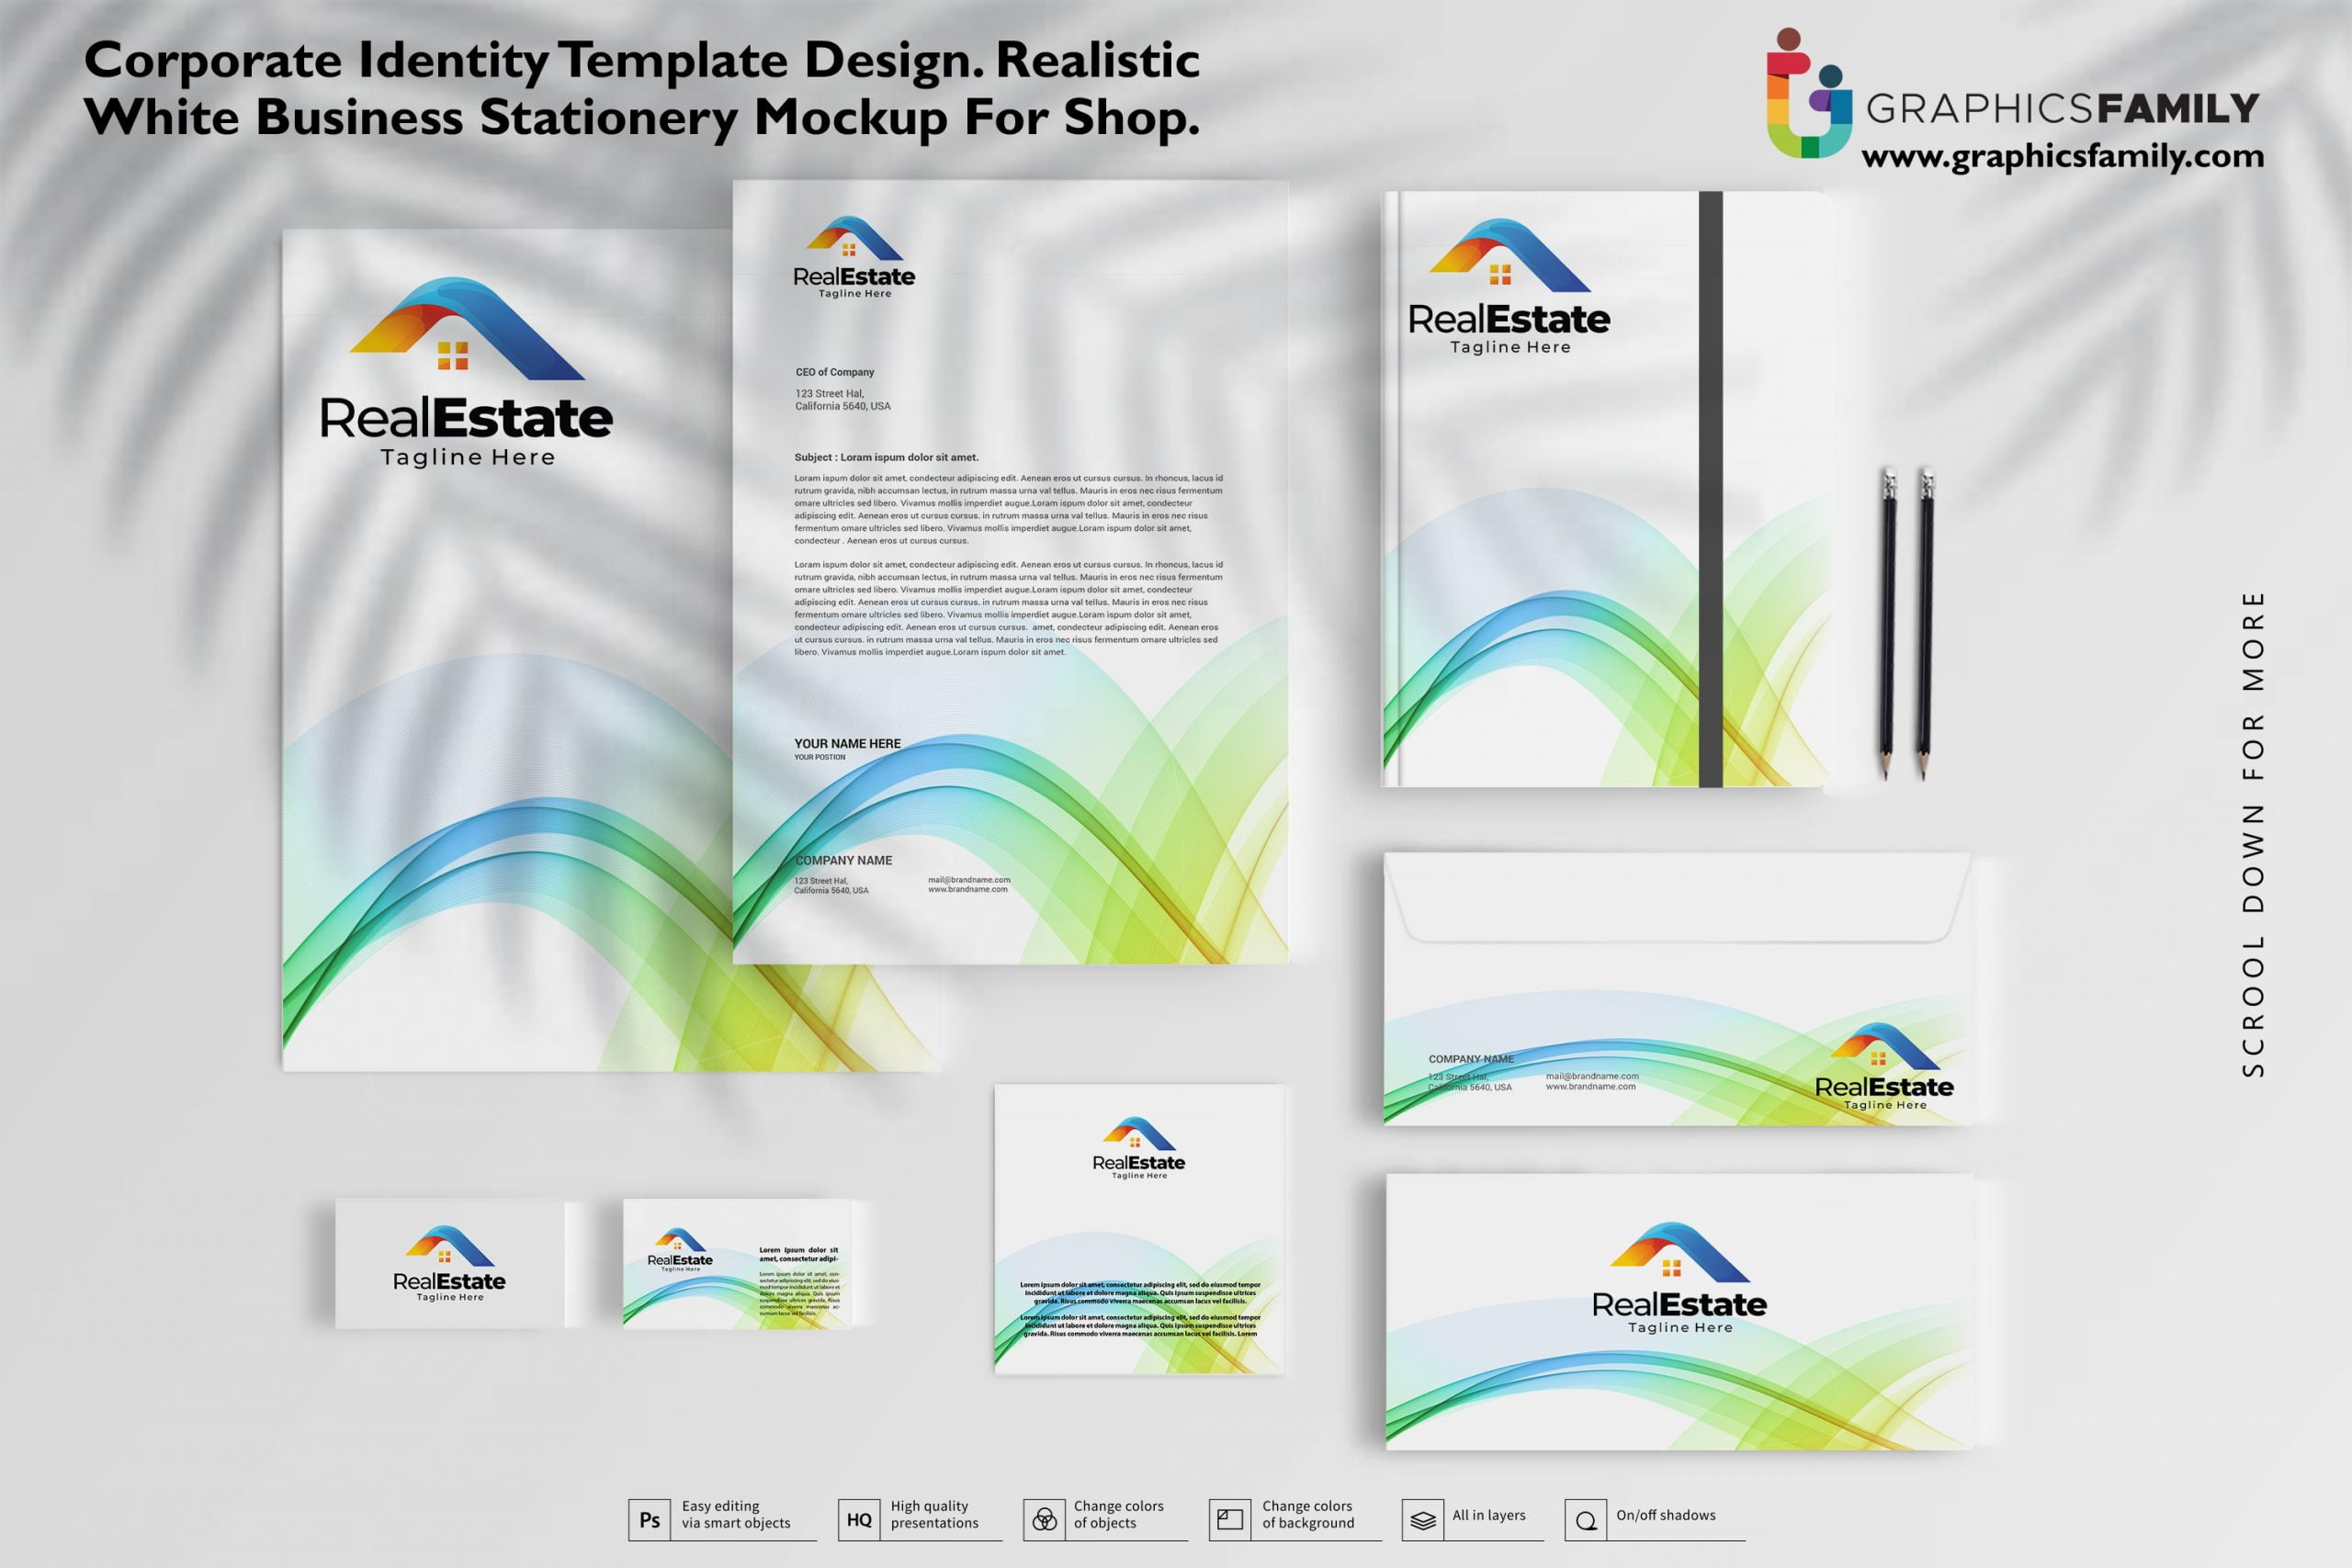 Free Corporate identity template design, Realistic White Business Stationery mockup for shop